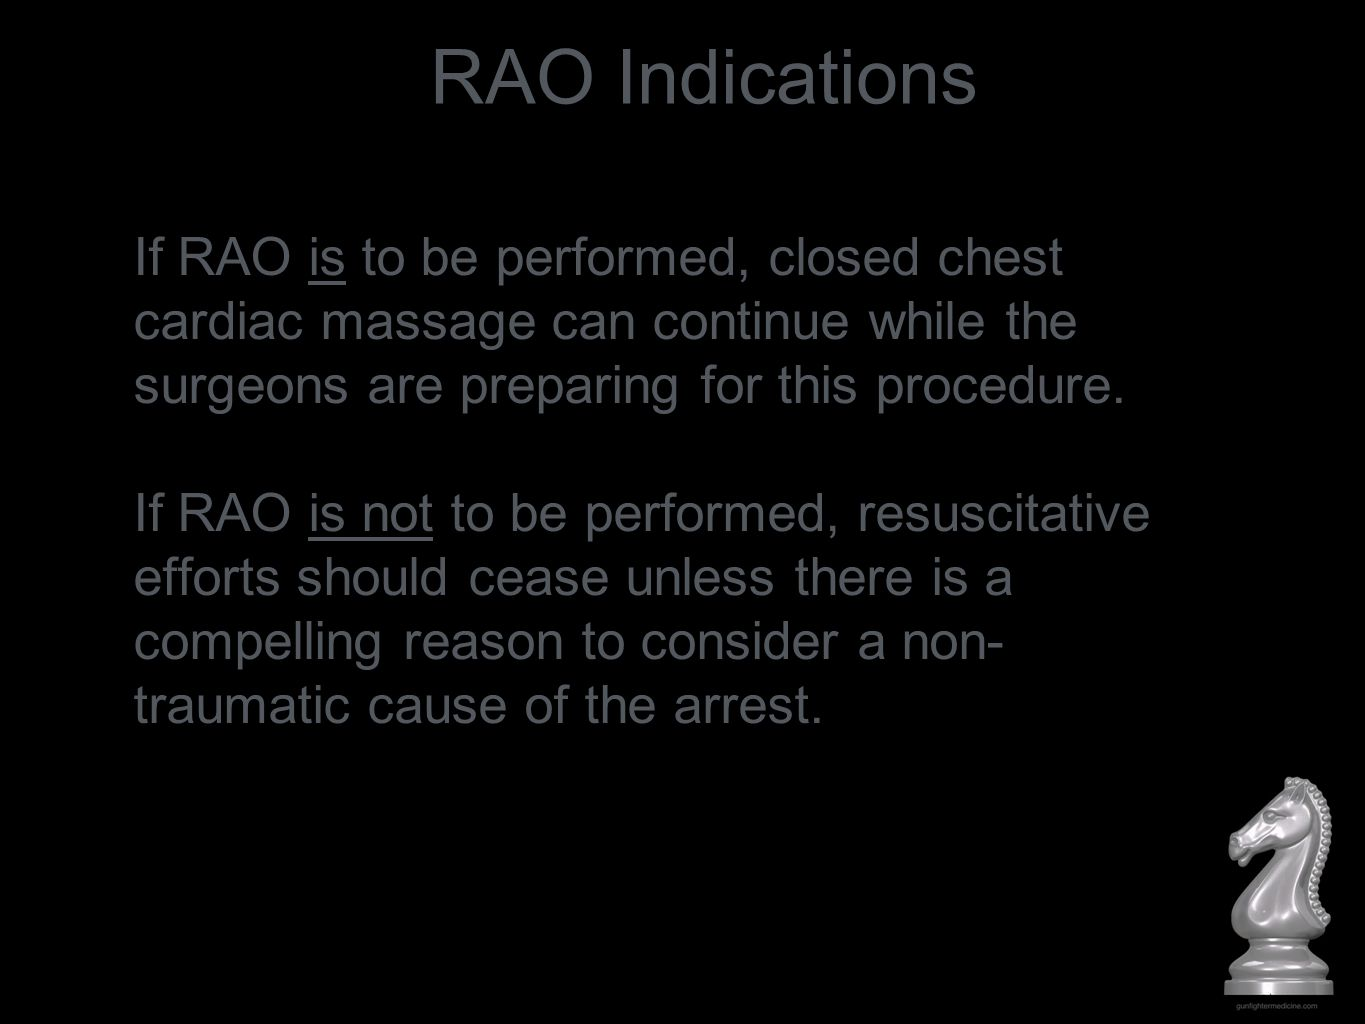 If RAO is to be performed, closed chest cardiac massage can continue while the surgeons are preparing for this procedure. If RAO is not to be performe